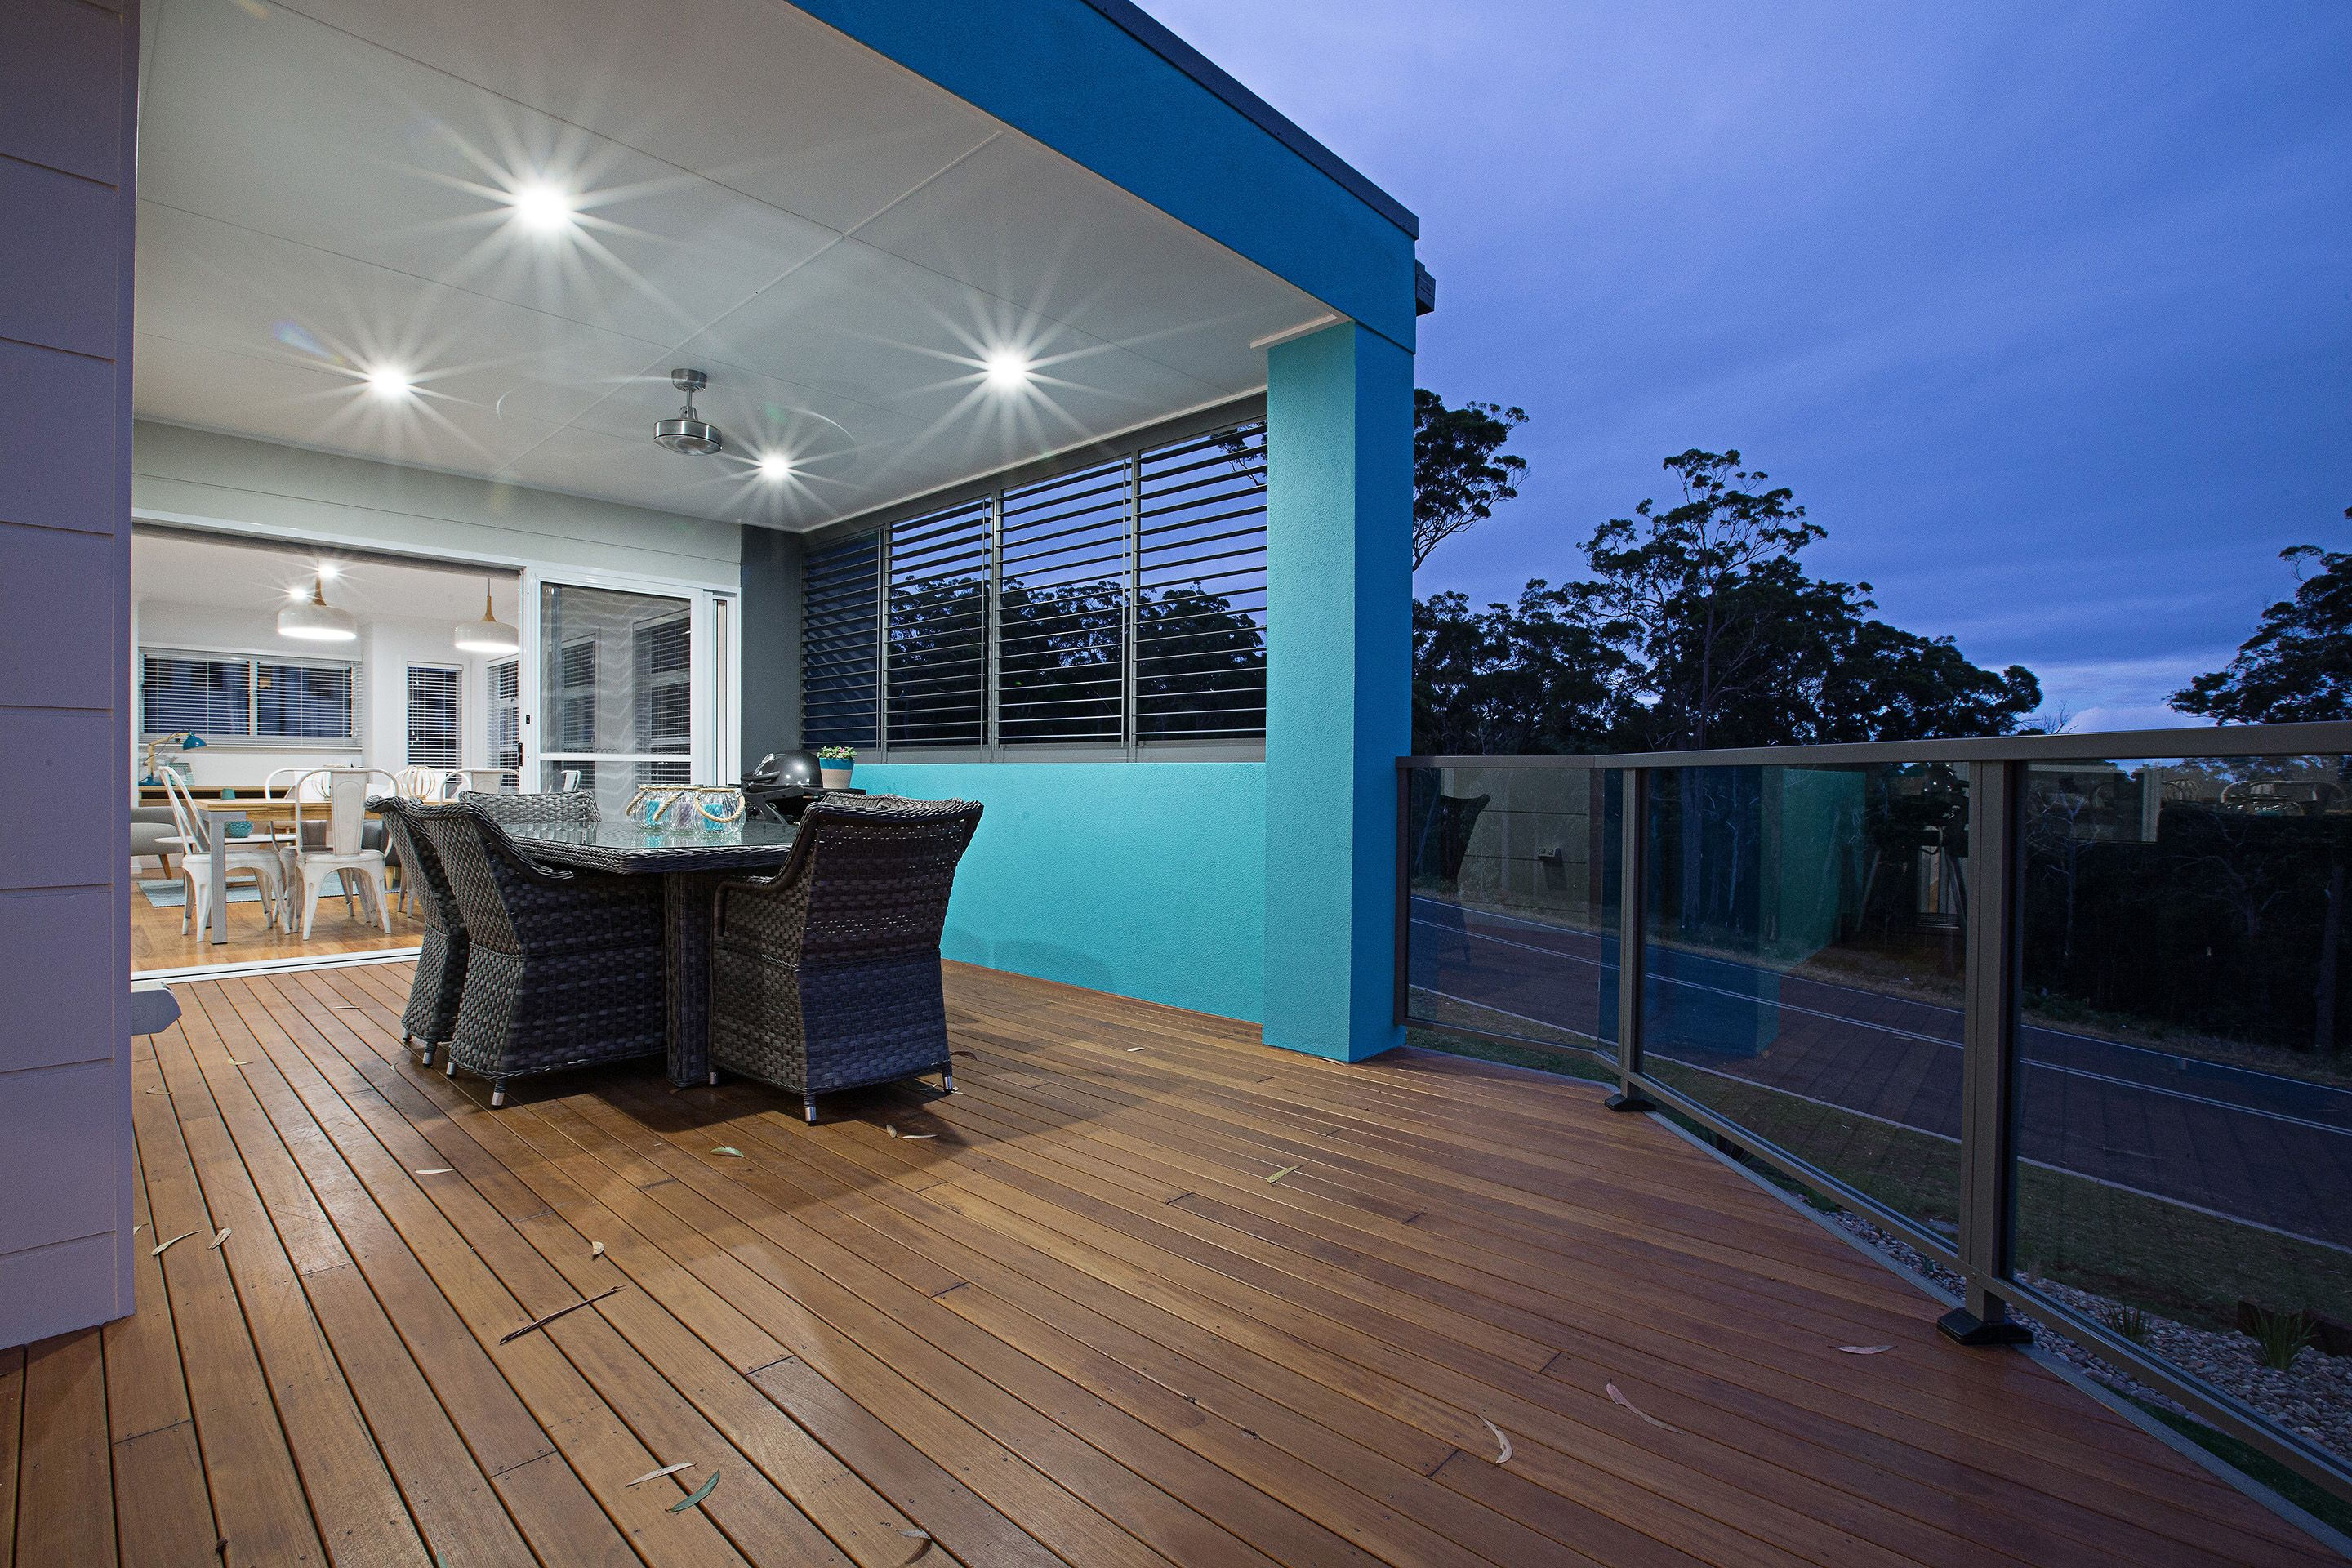 There is plenty of space on this deck for dining and entertaining ...